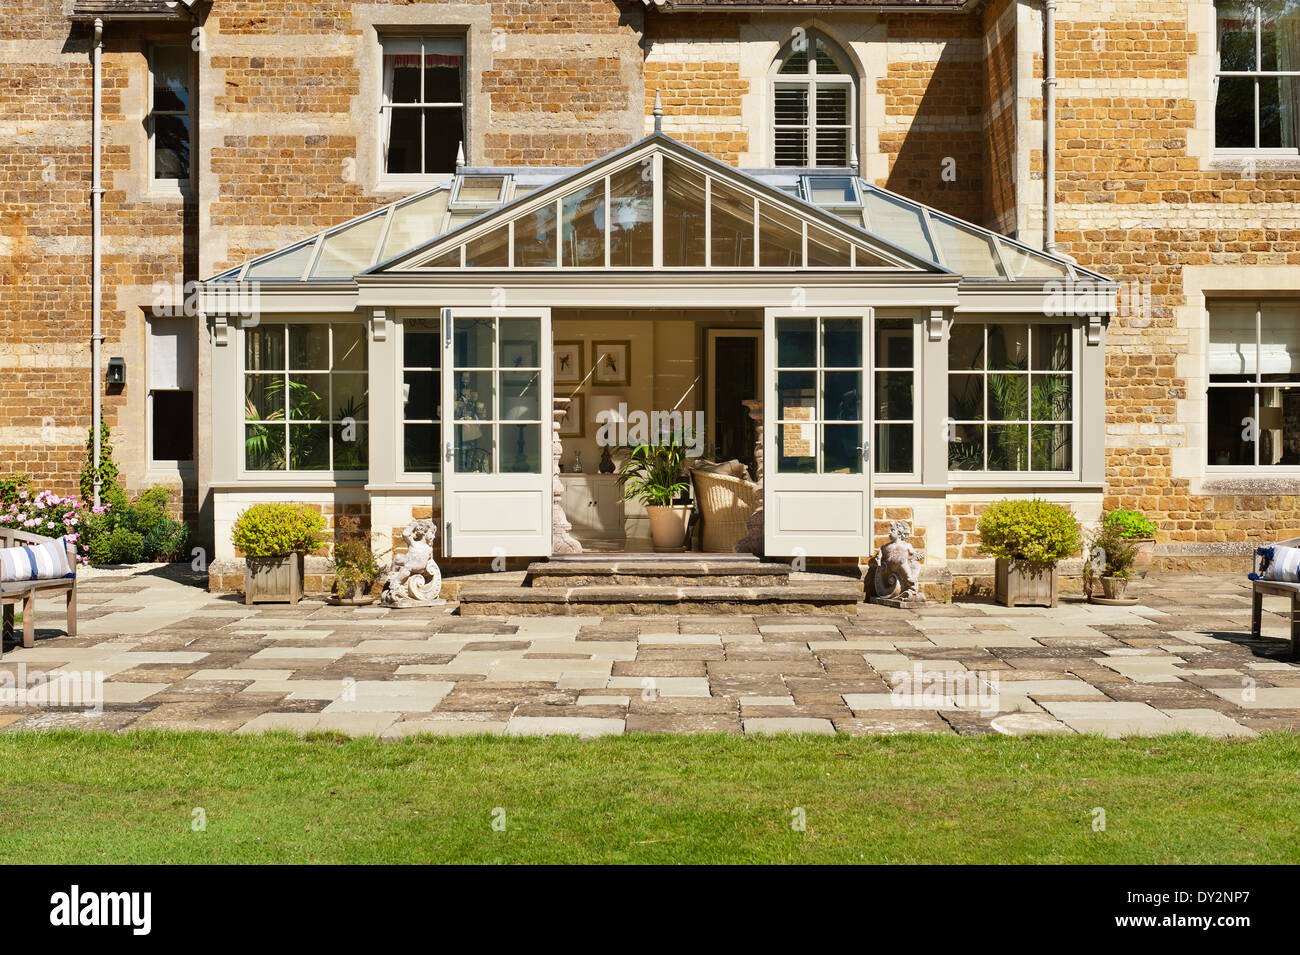 Exterior facade of a conservatory added to 19th century farmhouse with stone patio and lawn - Stock Image